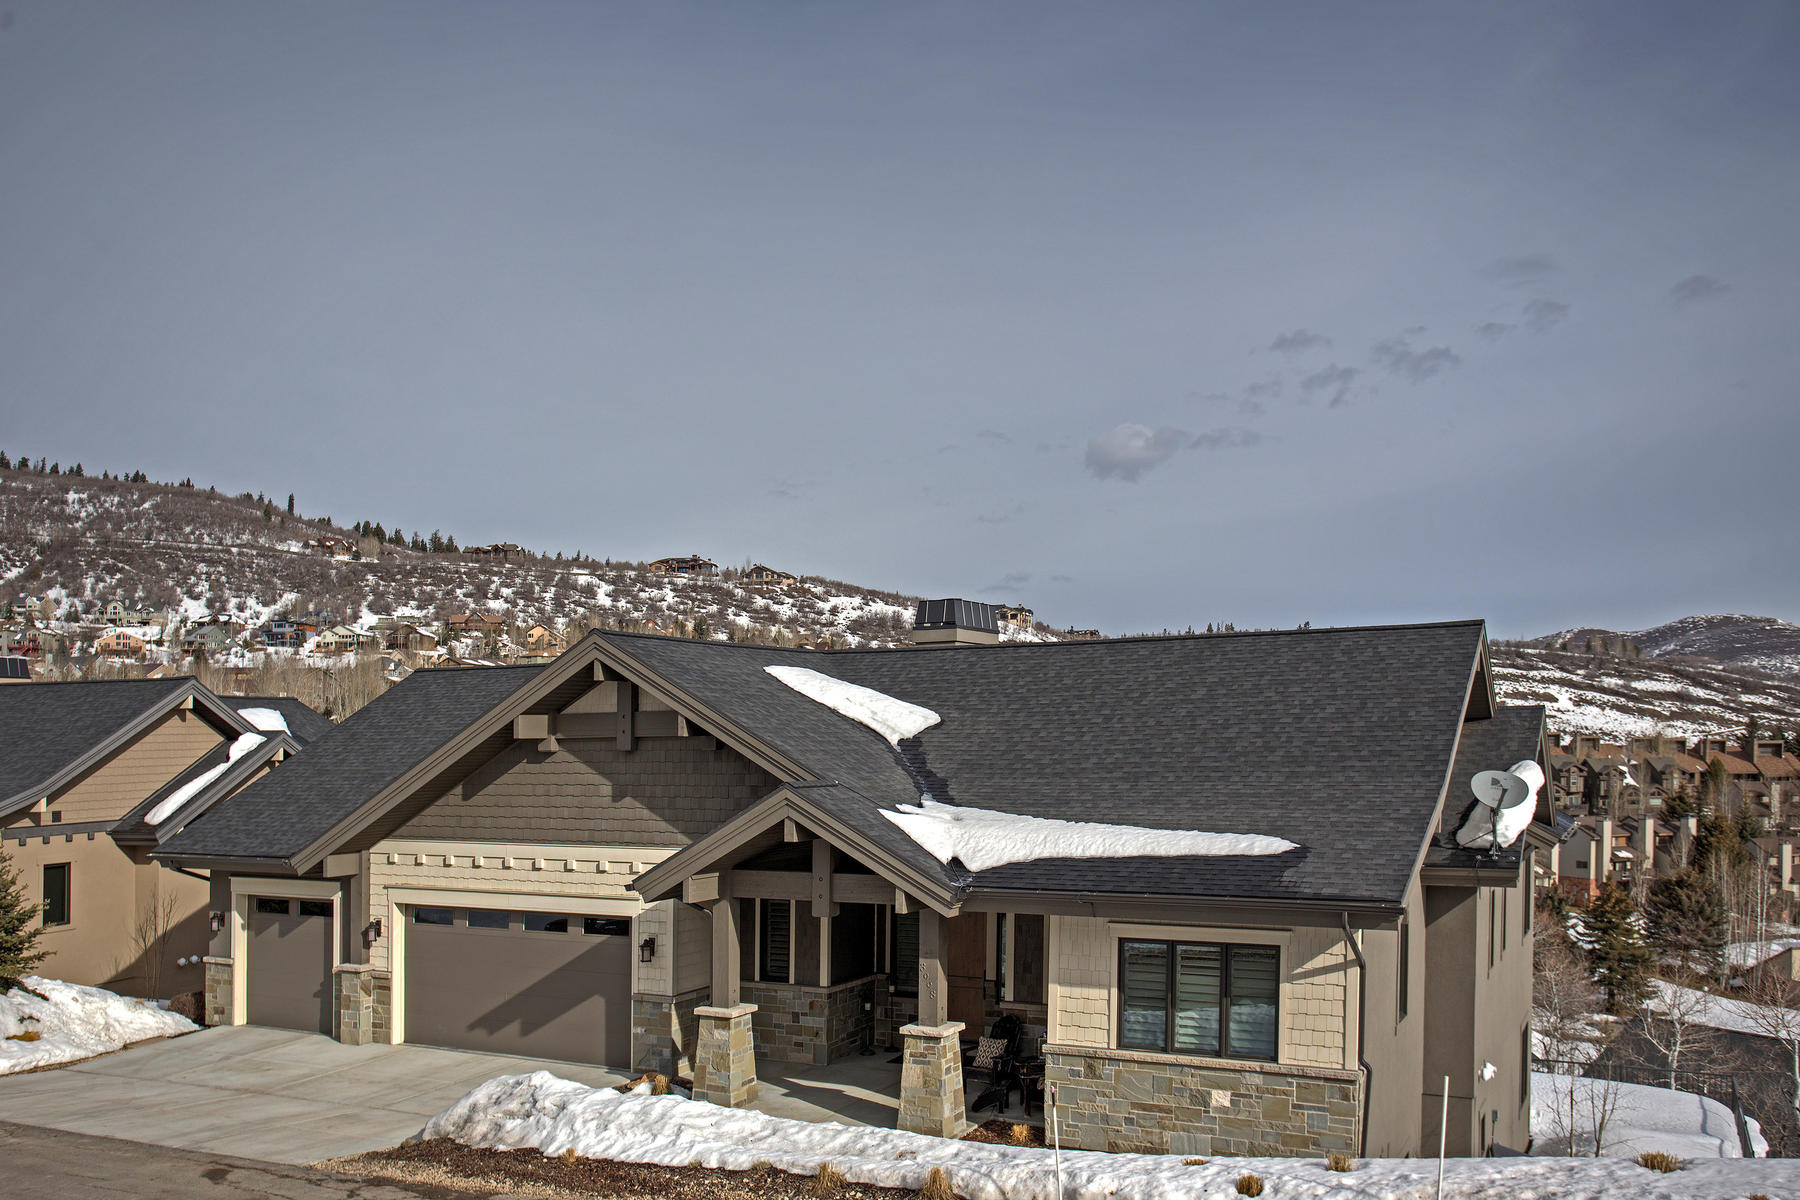 Single Family Home for Sale at Hidden Gem In Hidden Cove 3998 Hidden Cove Rd Park City, Utah 84098 United States